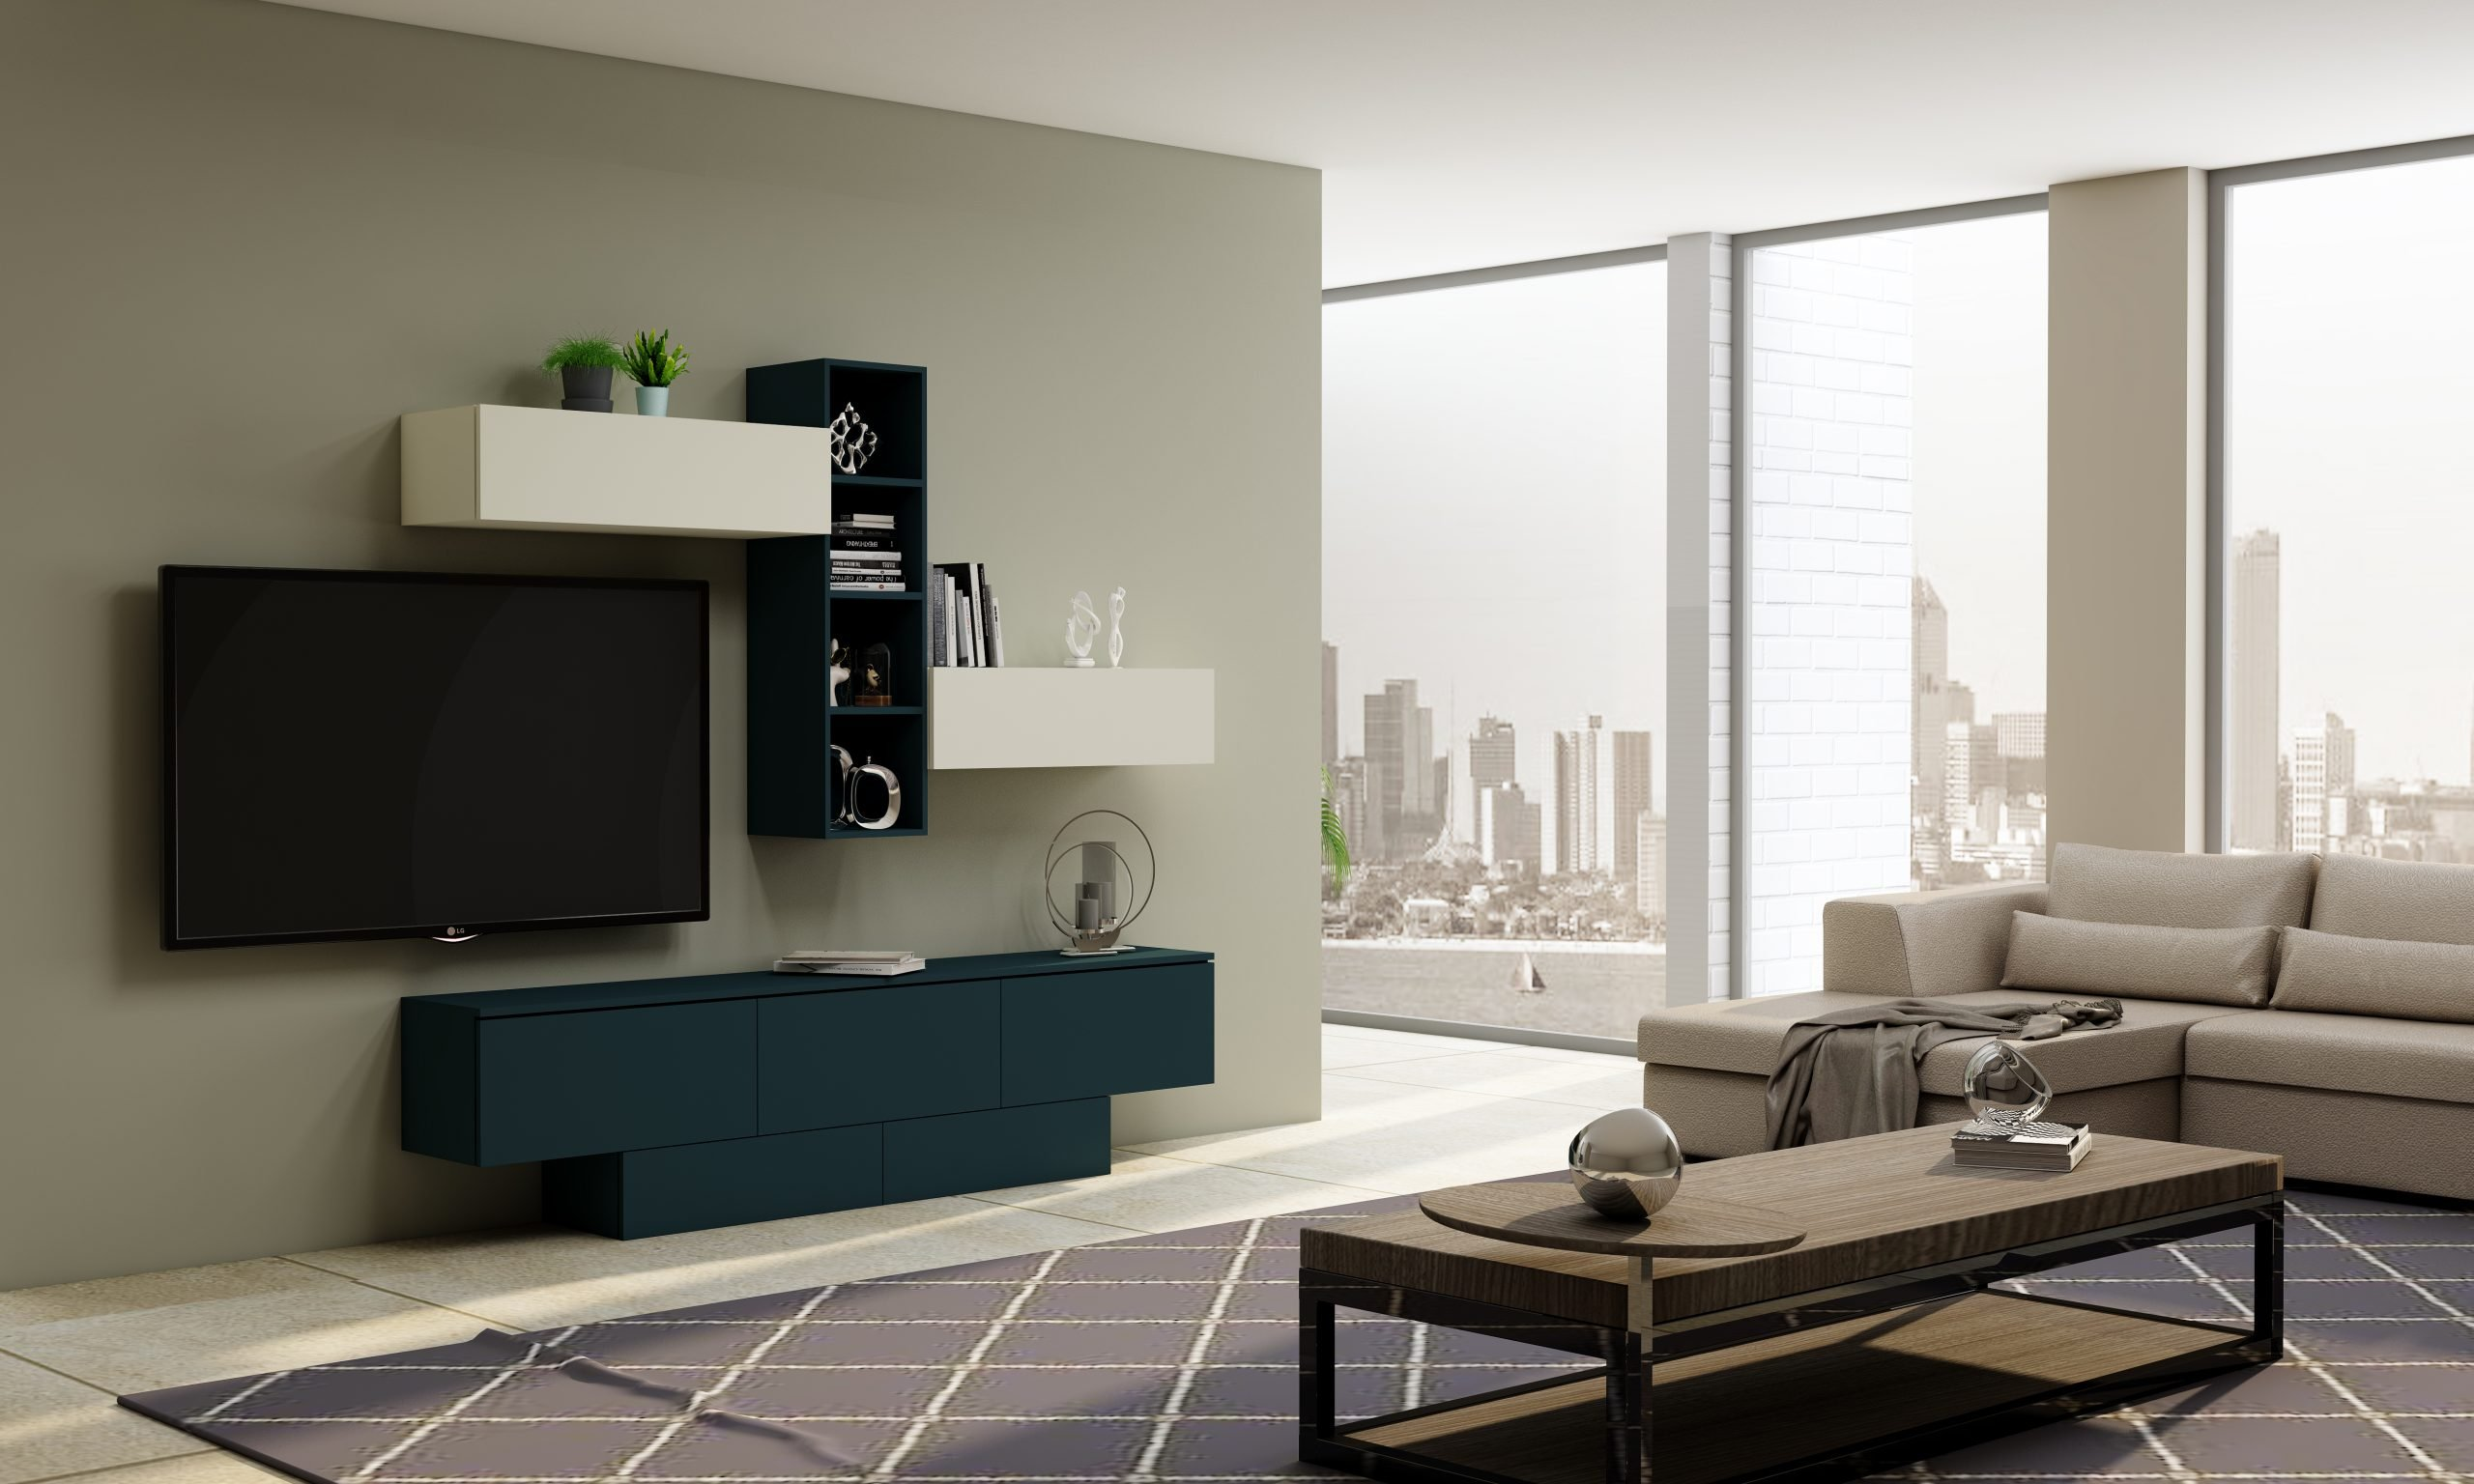 TV unit with Storage in Flap ups, Drawers and Open shelf units in Combination of White and Smoke Blue